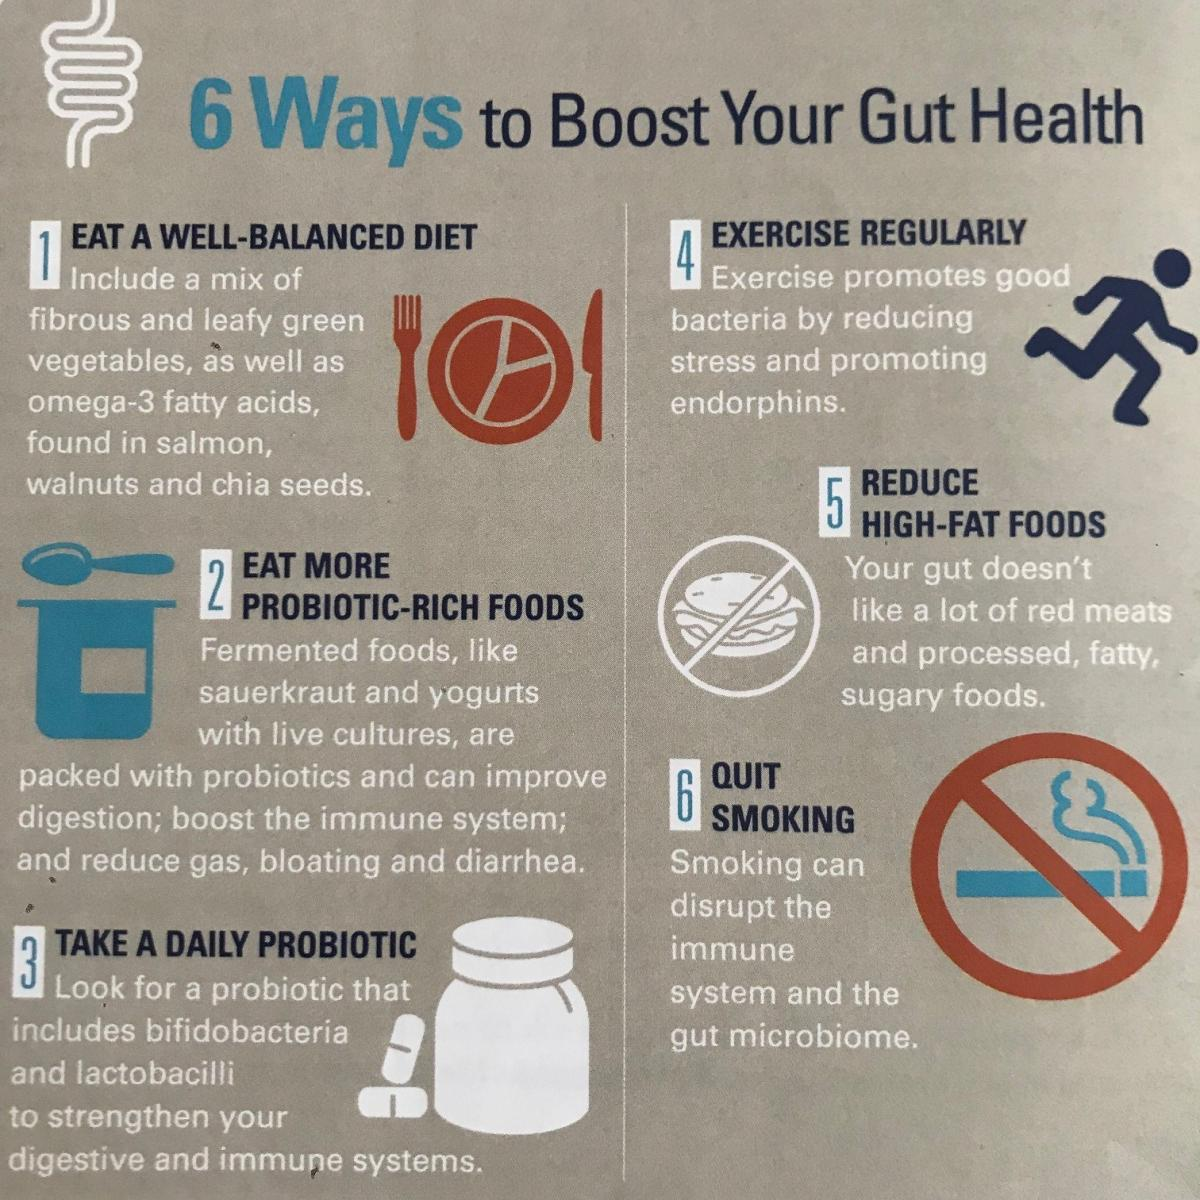 Ways to Boost your Gut Health